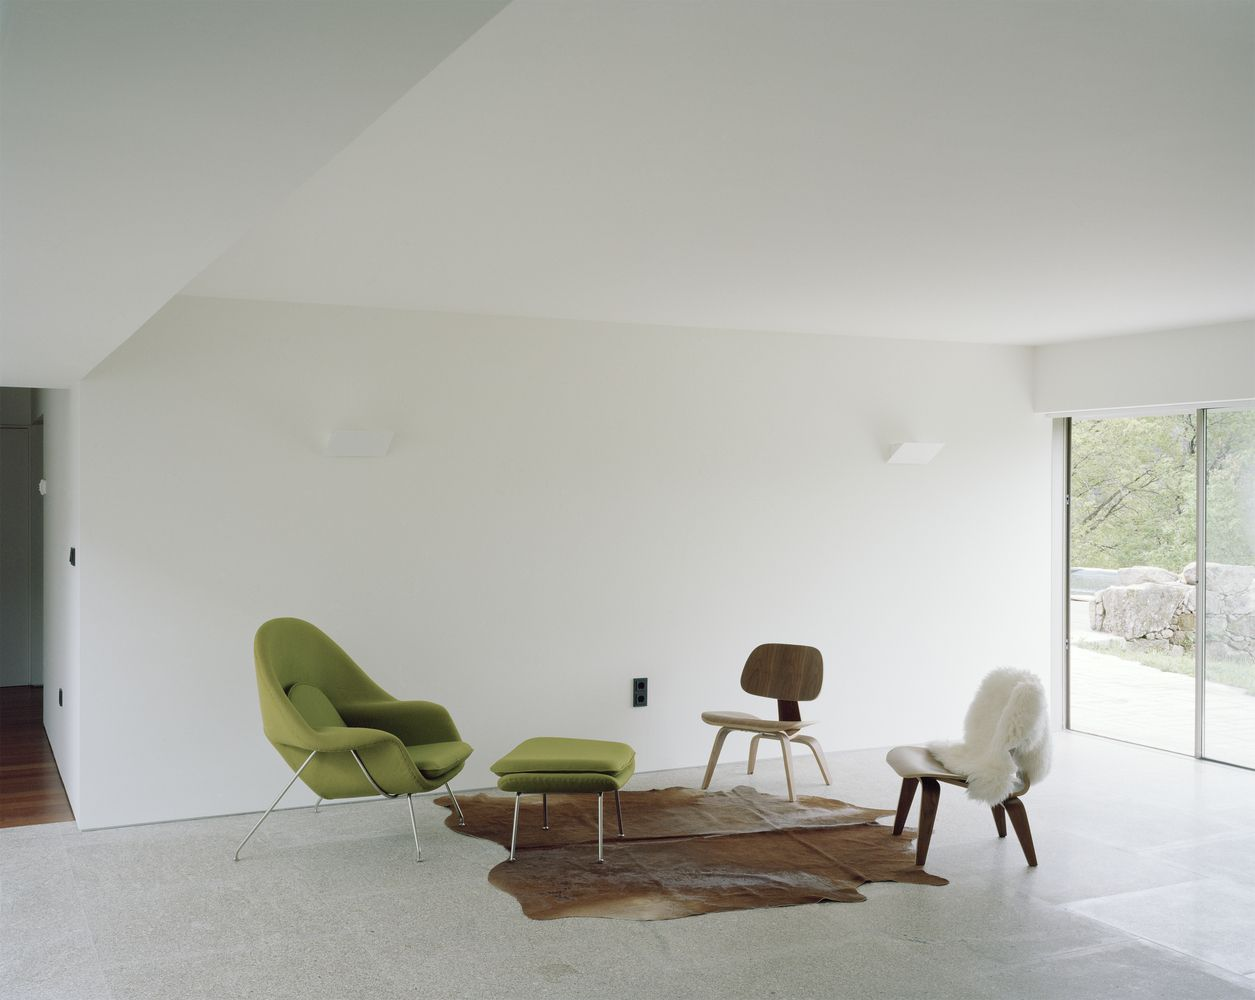 House in Melgaço from Nuno Brandão Costa interior